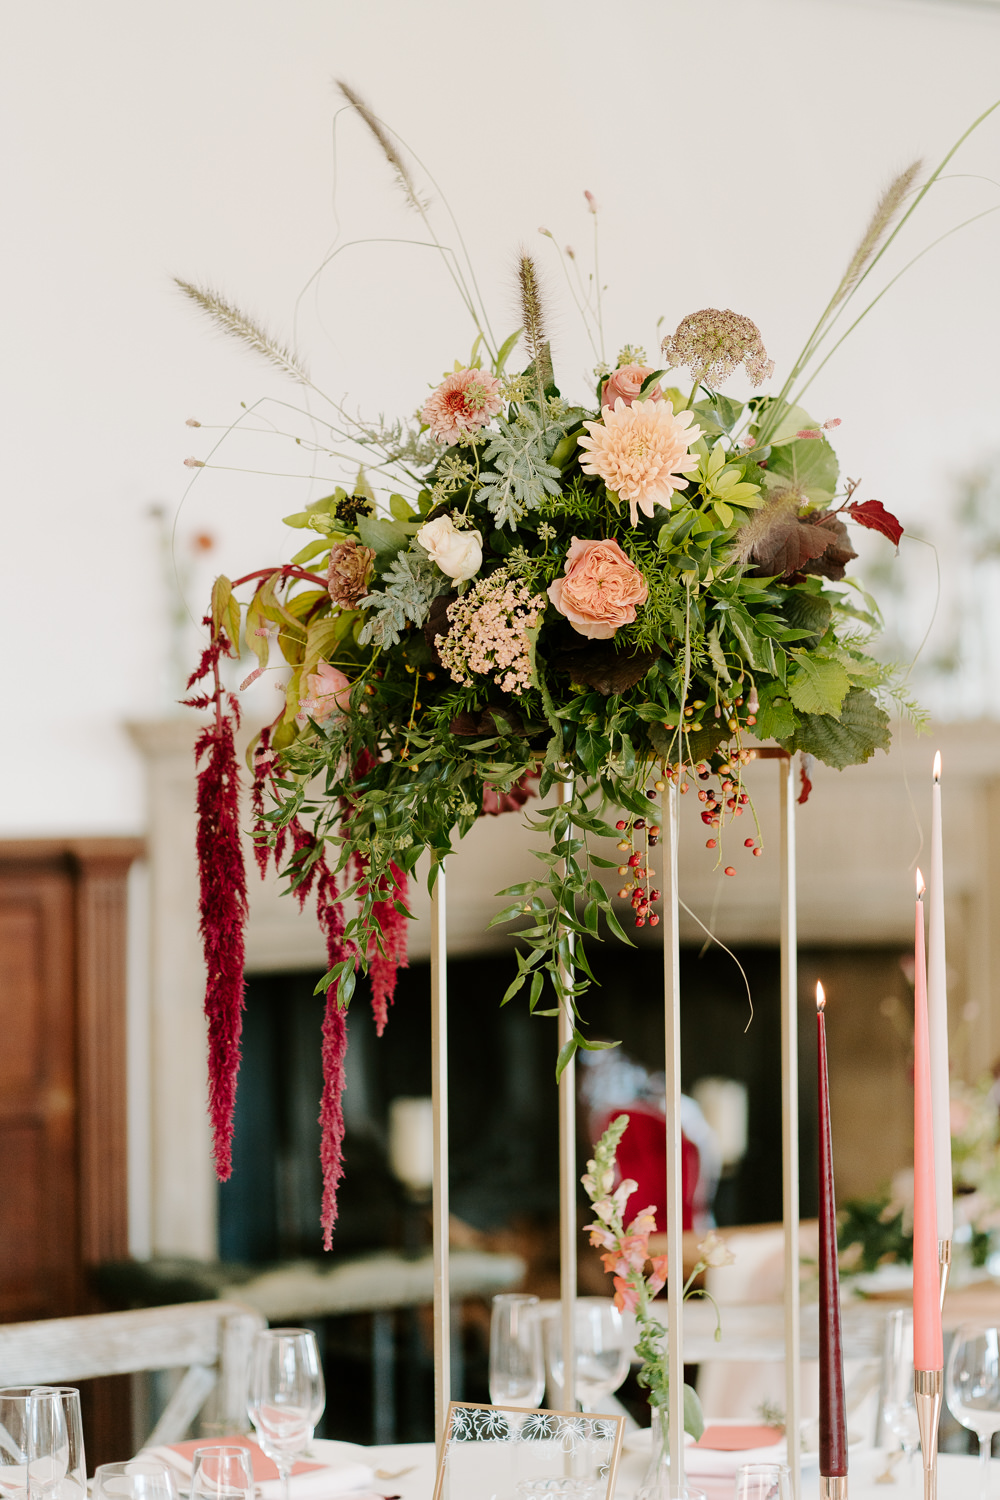 Tall Flowers Centrepiece Table Coral Rose Amaranthus Contemporary Wedding Ideas Chloe Ely Photography